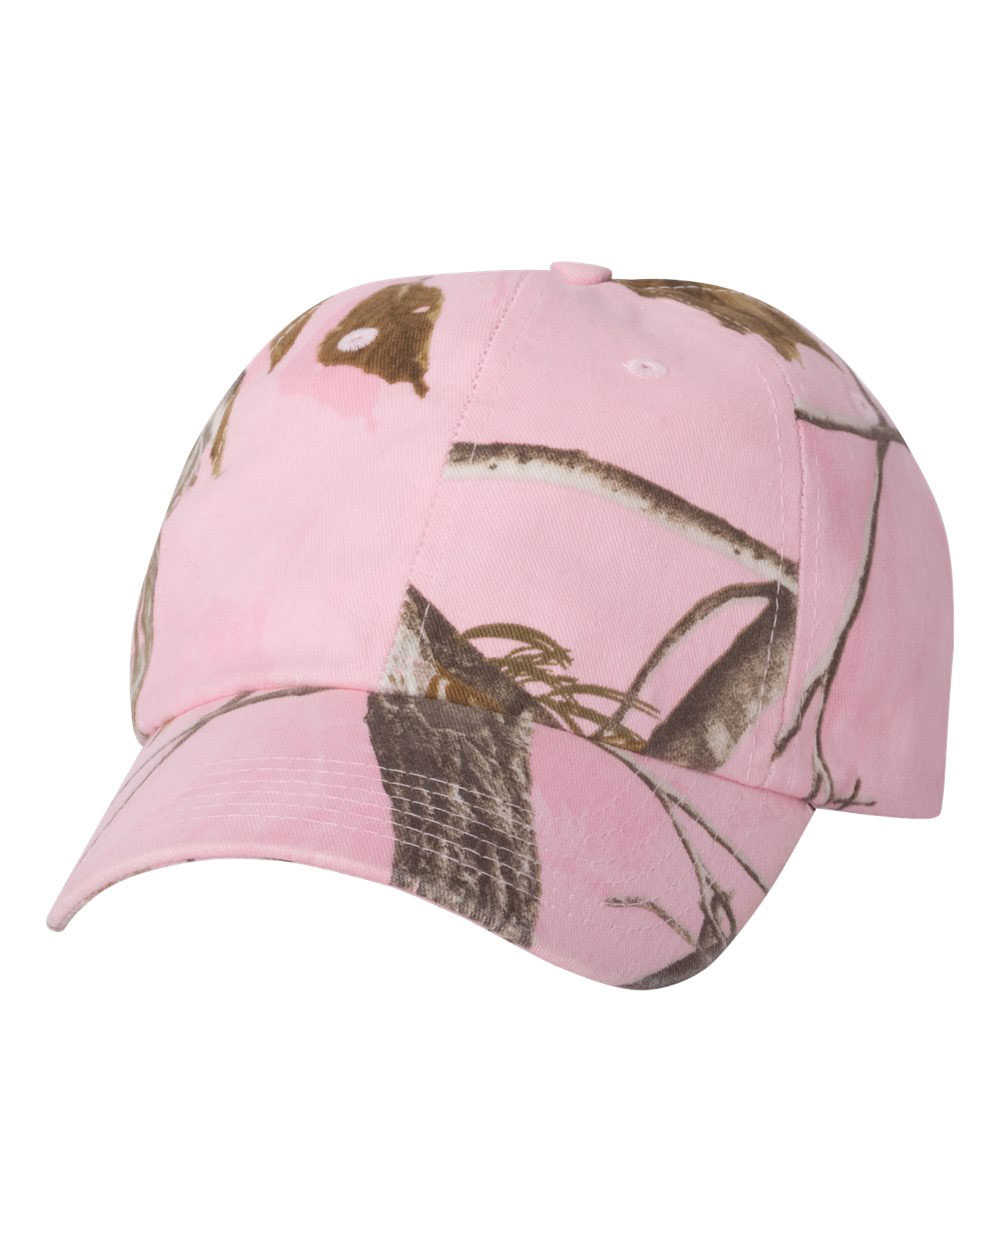 Realtree All-Purpose Pink Cap